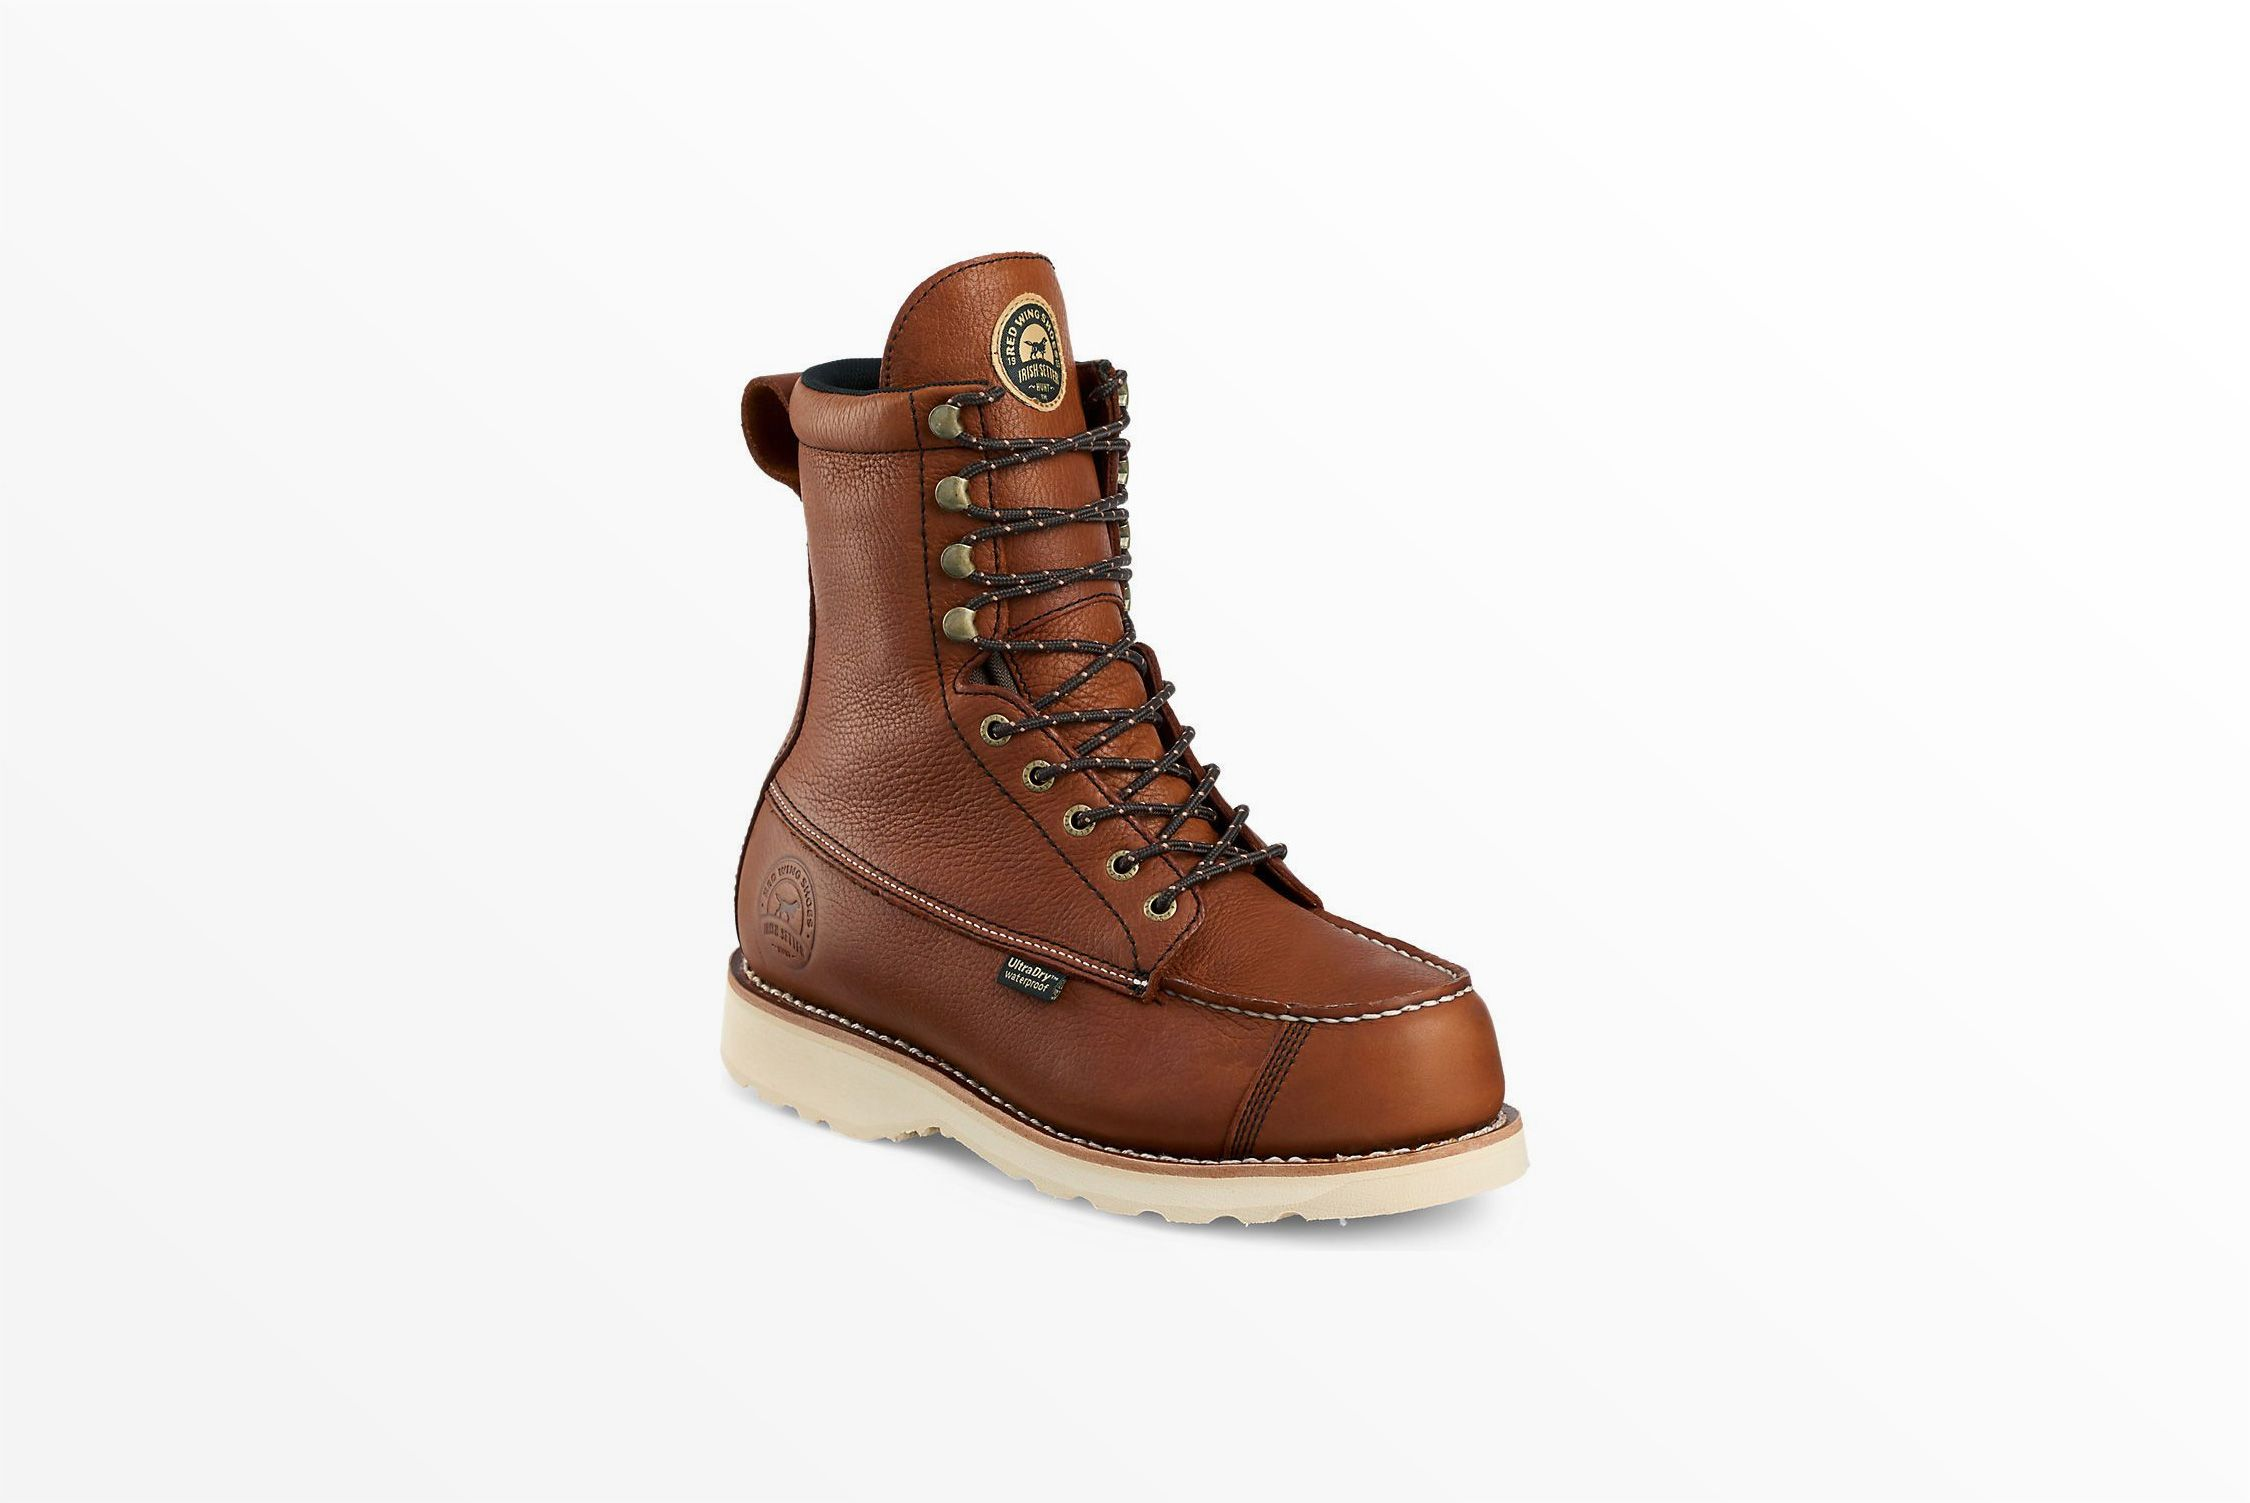 df455ae3e3 Irish Setter Wingshooter 894 Boots on Modern Huntsman. Top outdoor hunting  gear.